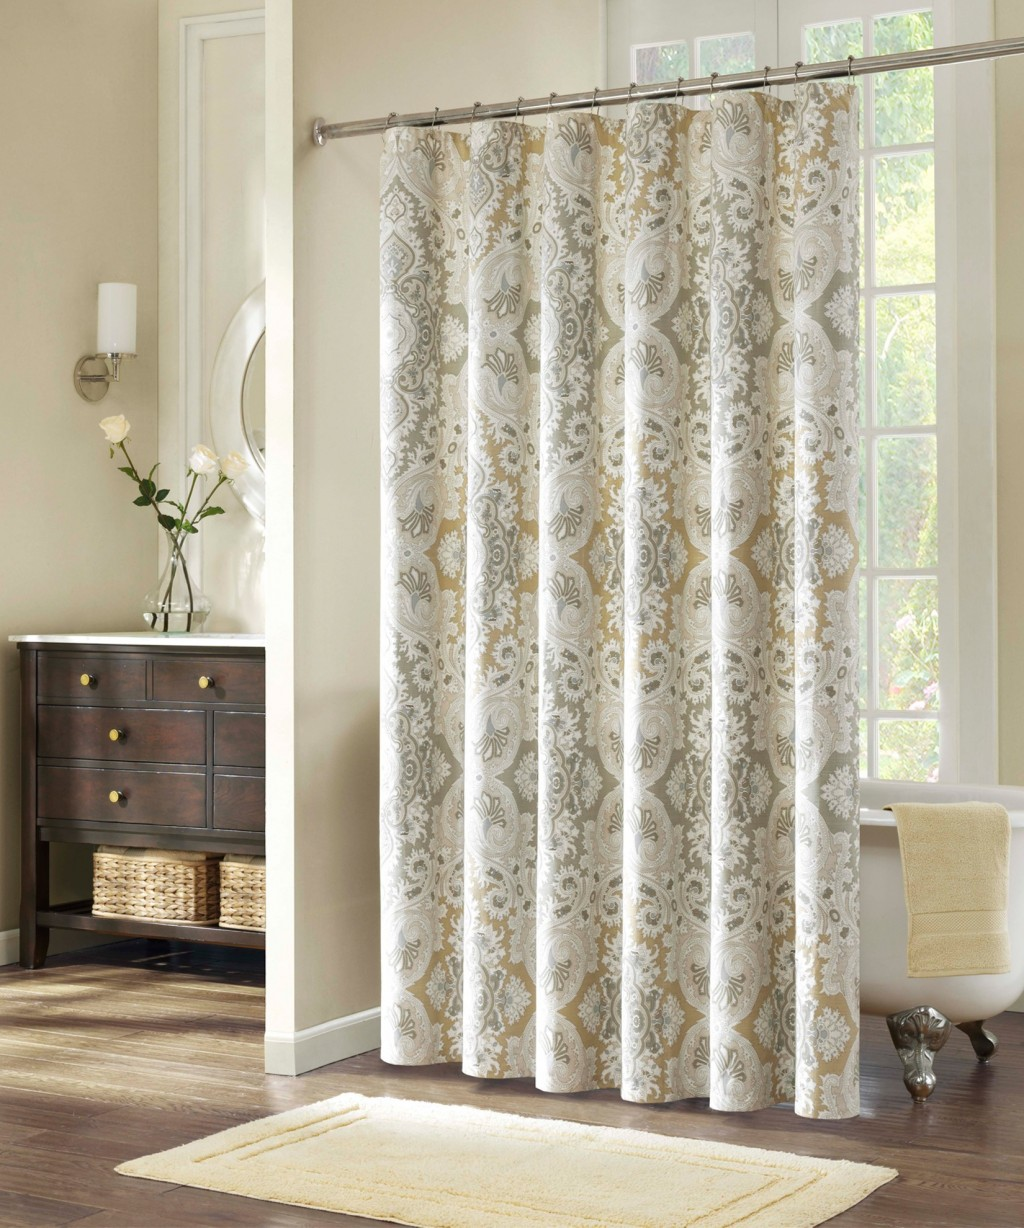 Neutral Curtains in Curtain